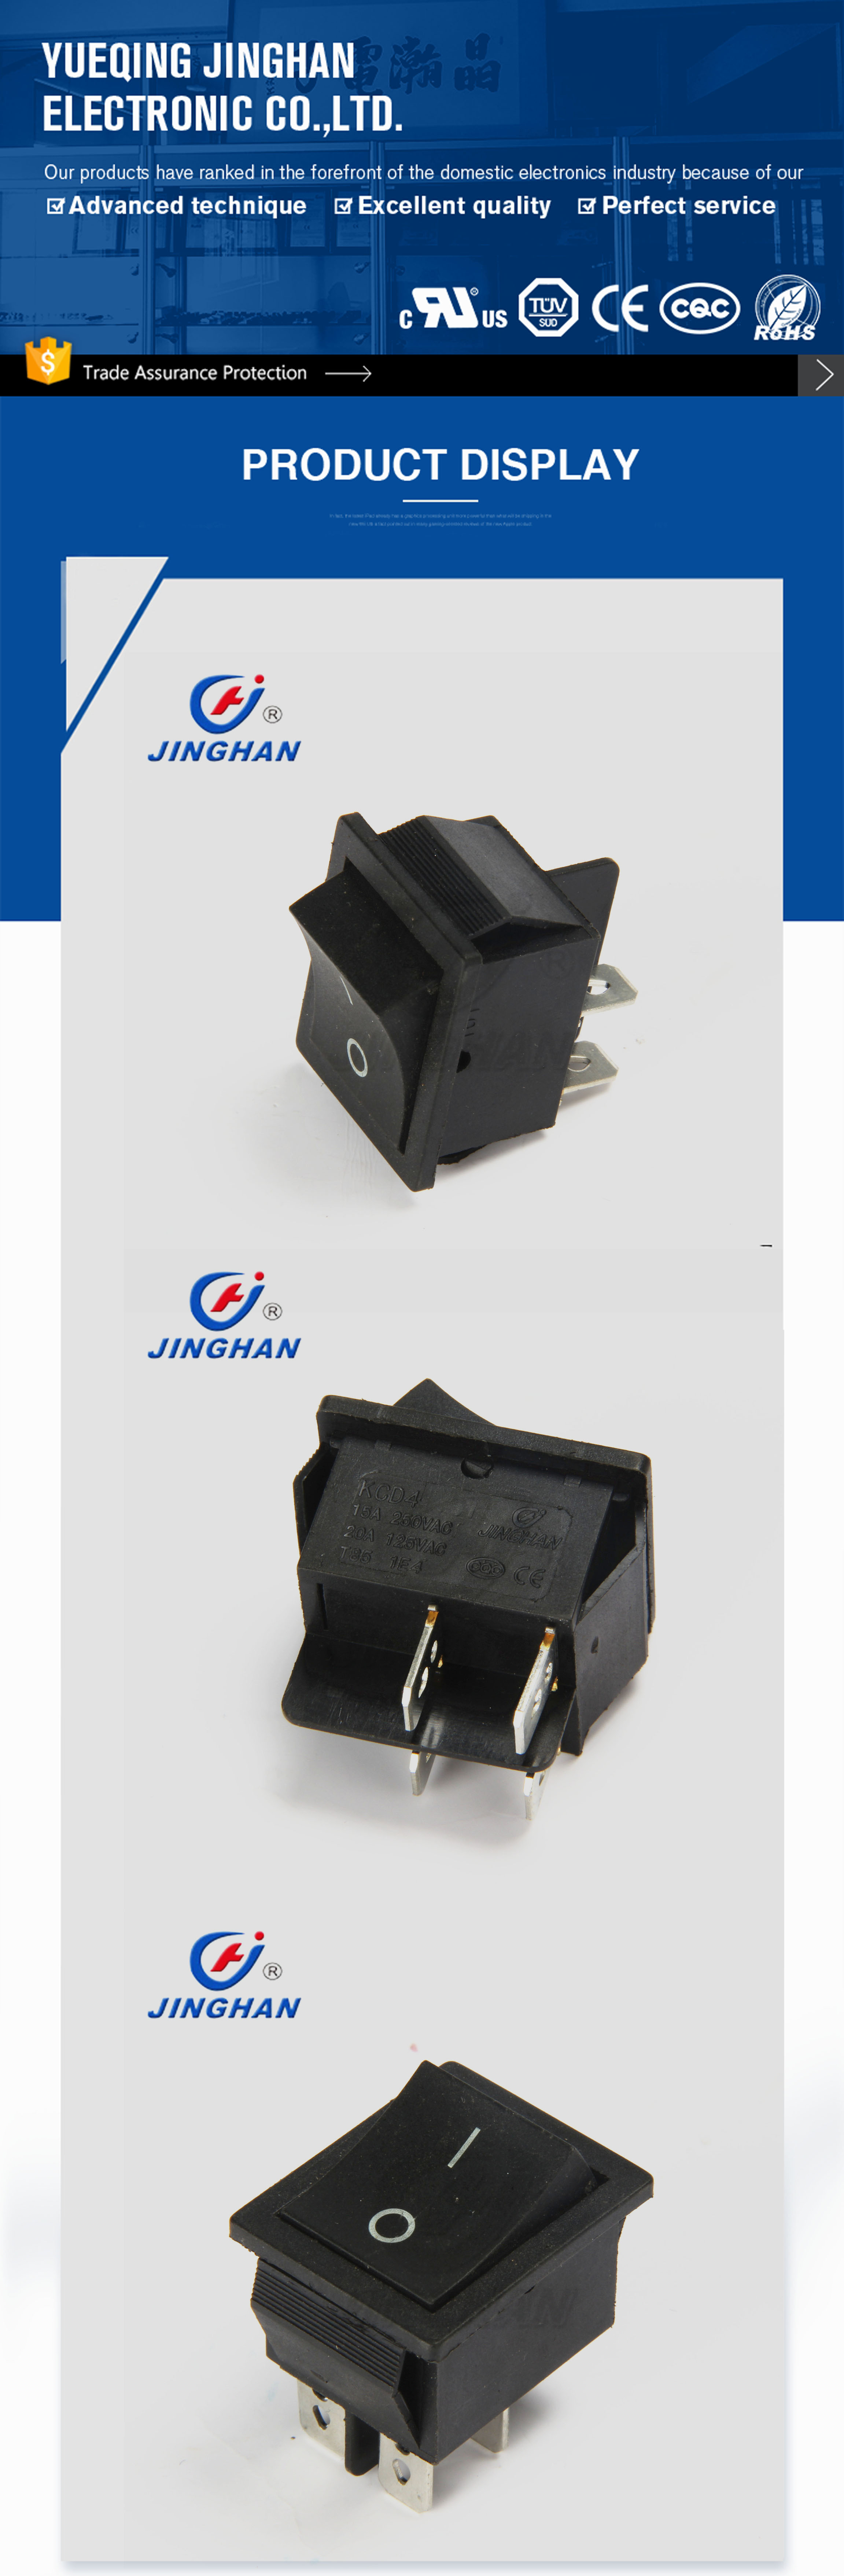 High Quality Wiring Diagram Black 4 Pin On Off 30 22mm Rocker Switch Buy 4 Pin On Off Rocker Switch 30 22mm Rocker Switch Rocker Switch Wiring Diagram Product On Alibaba Com